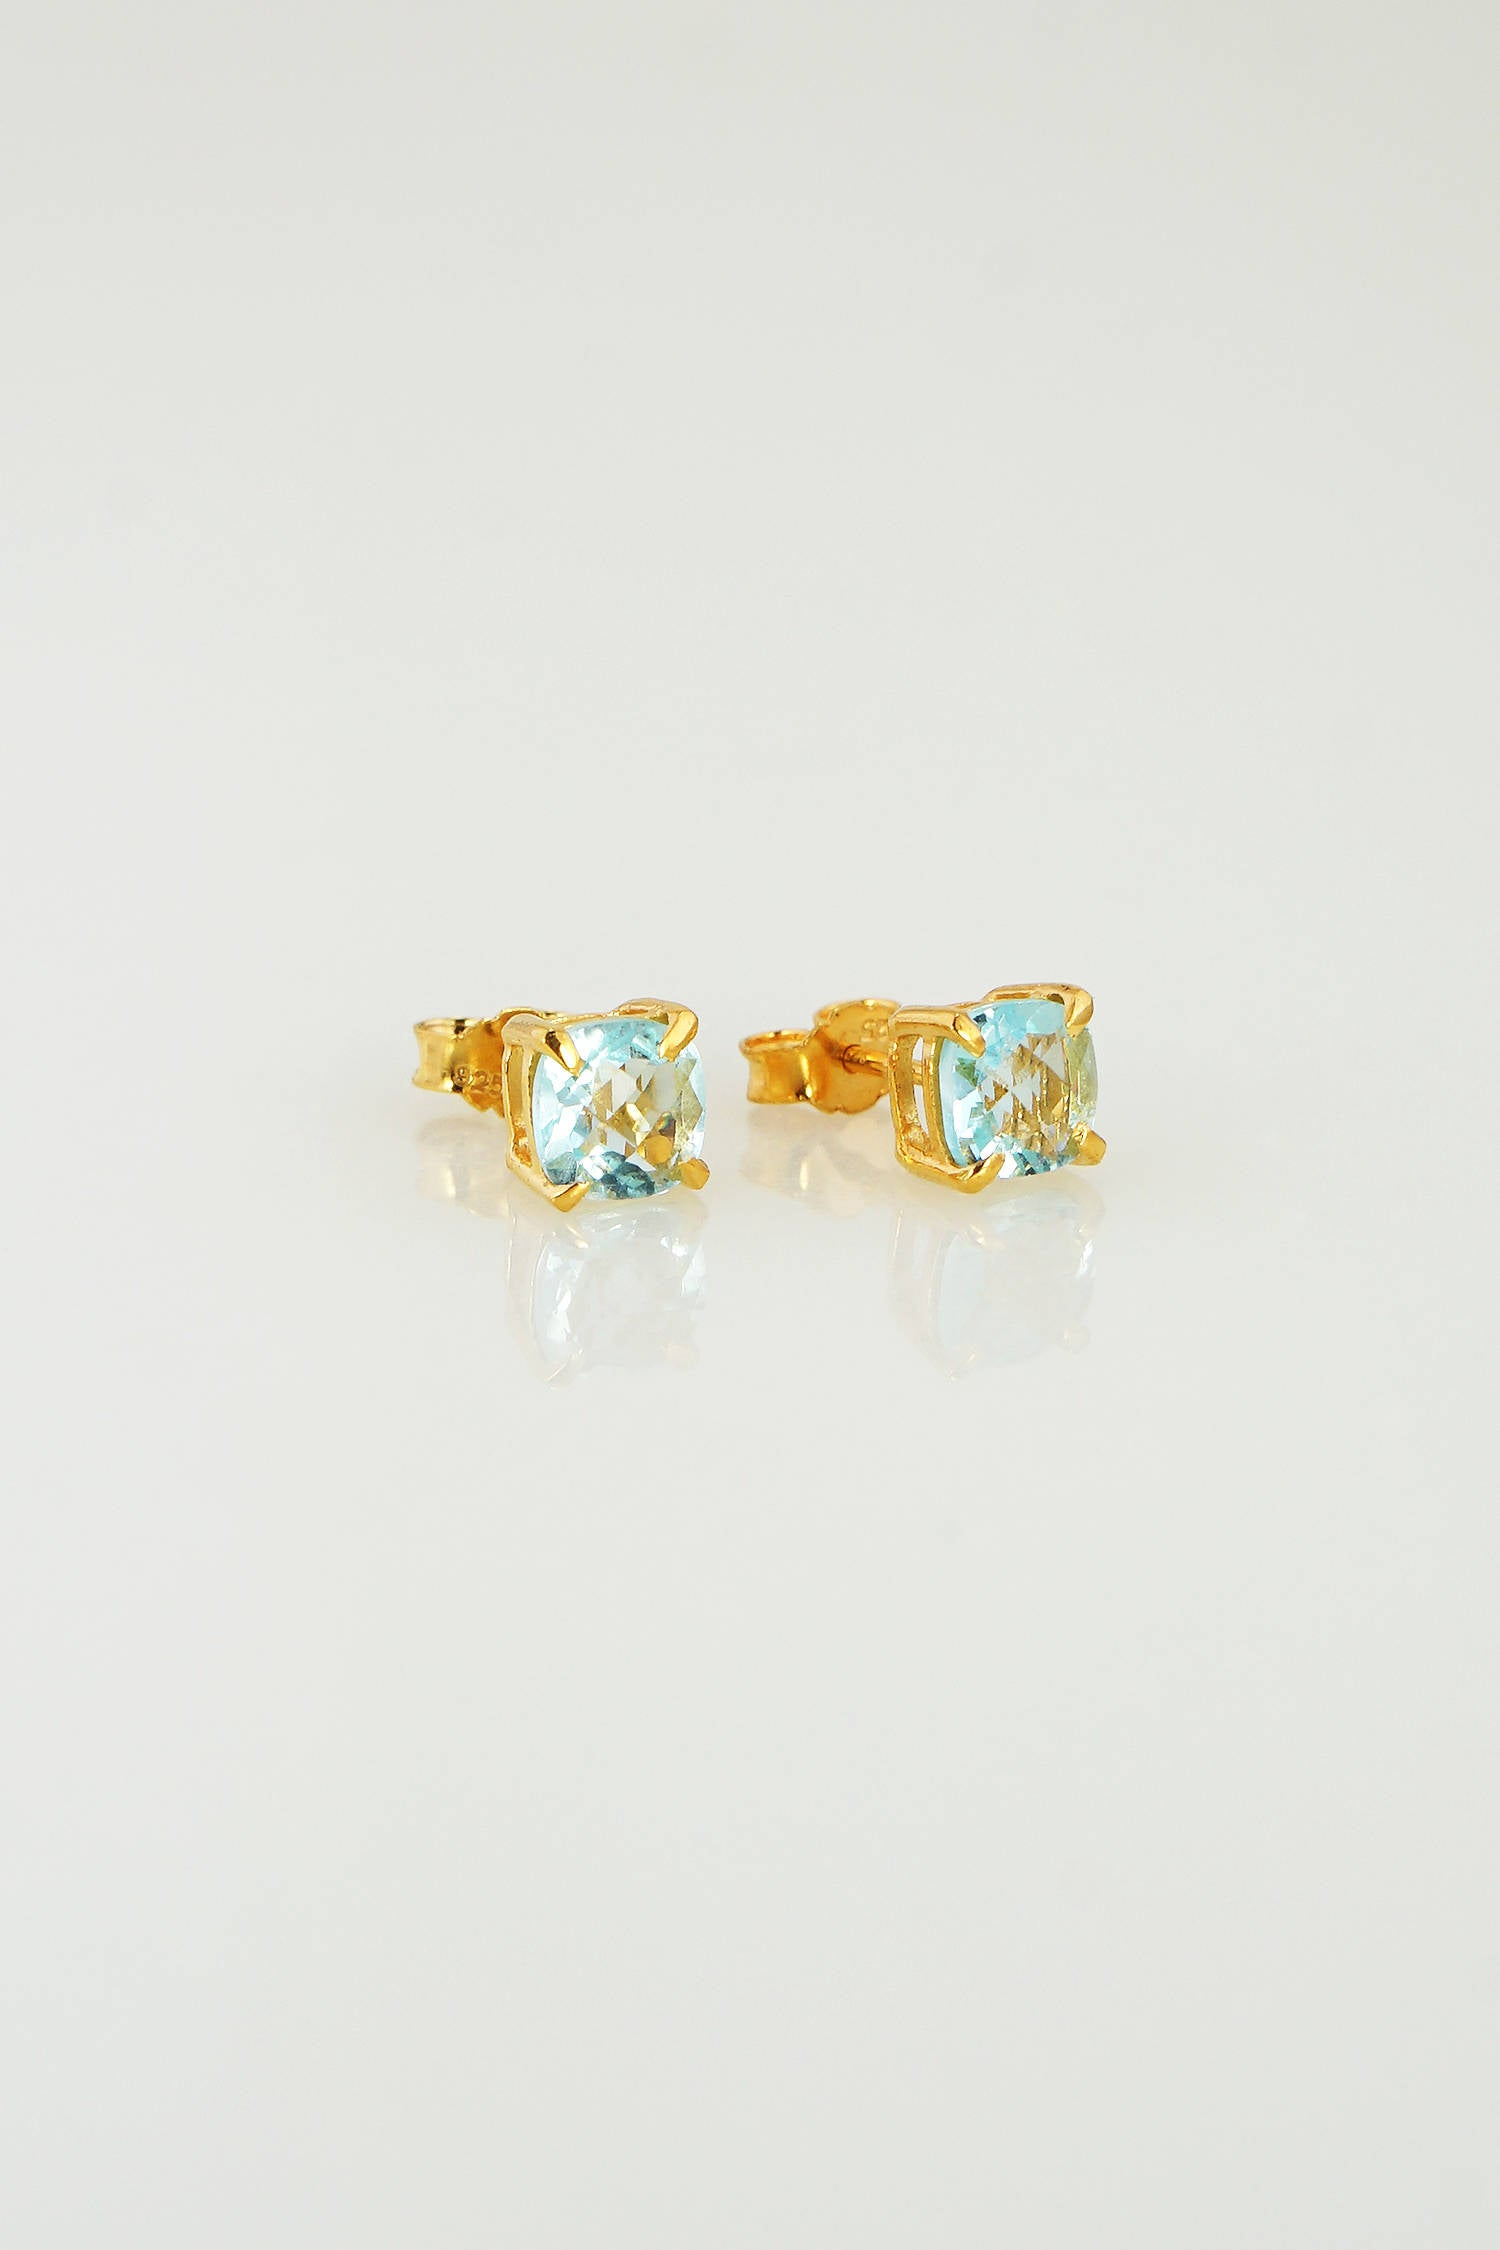 Aquamarine Post Earring, March Birthstone Studs, Minimalist studs, Tiny Studs, Cushion Shape Studs, Gemstone Studs, Gift for her